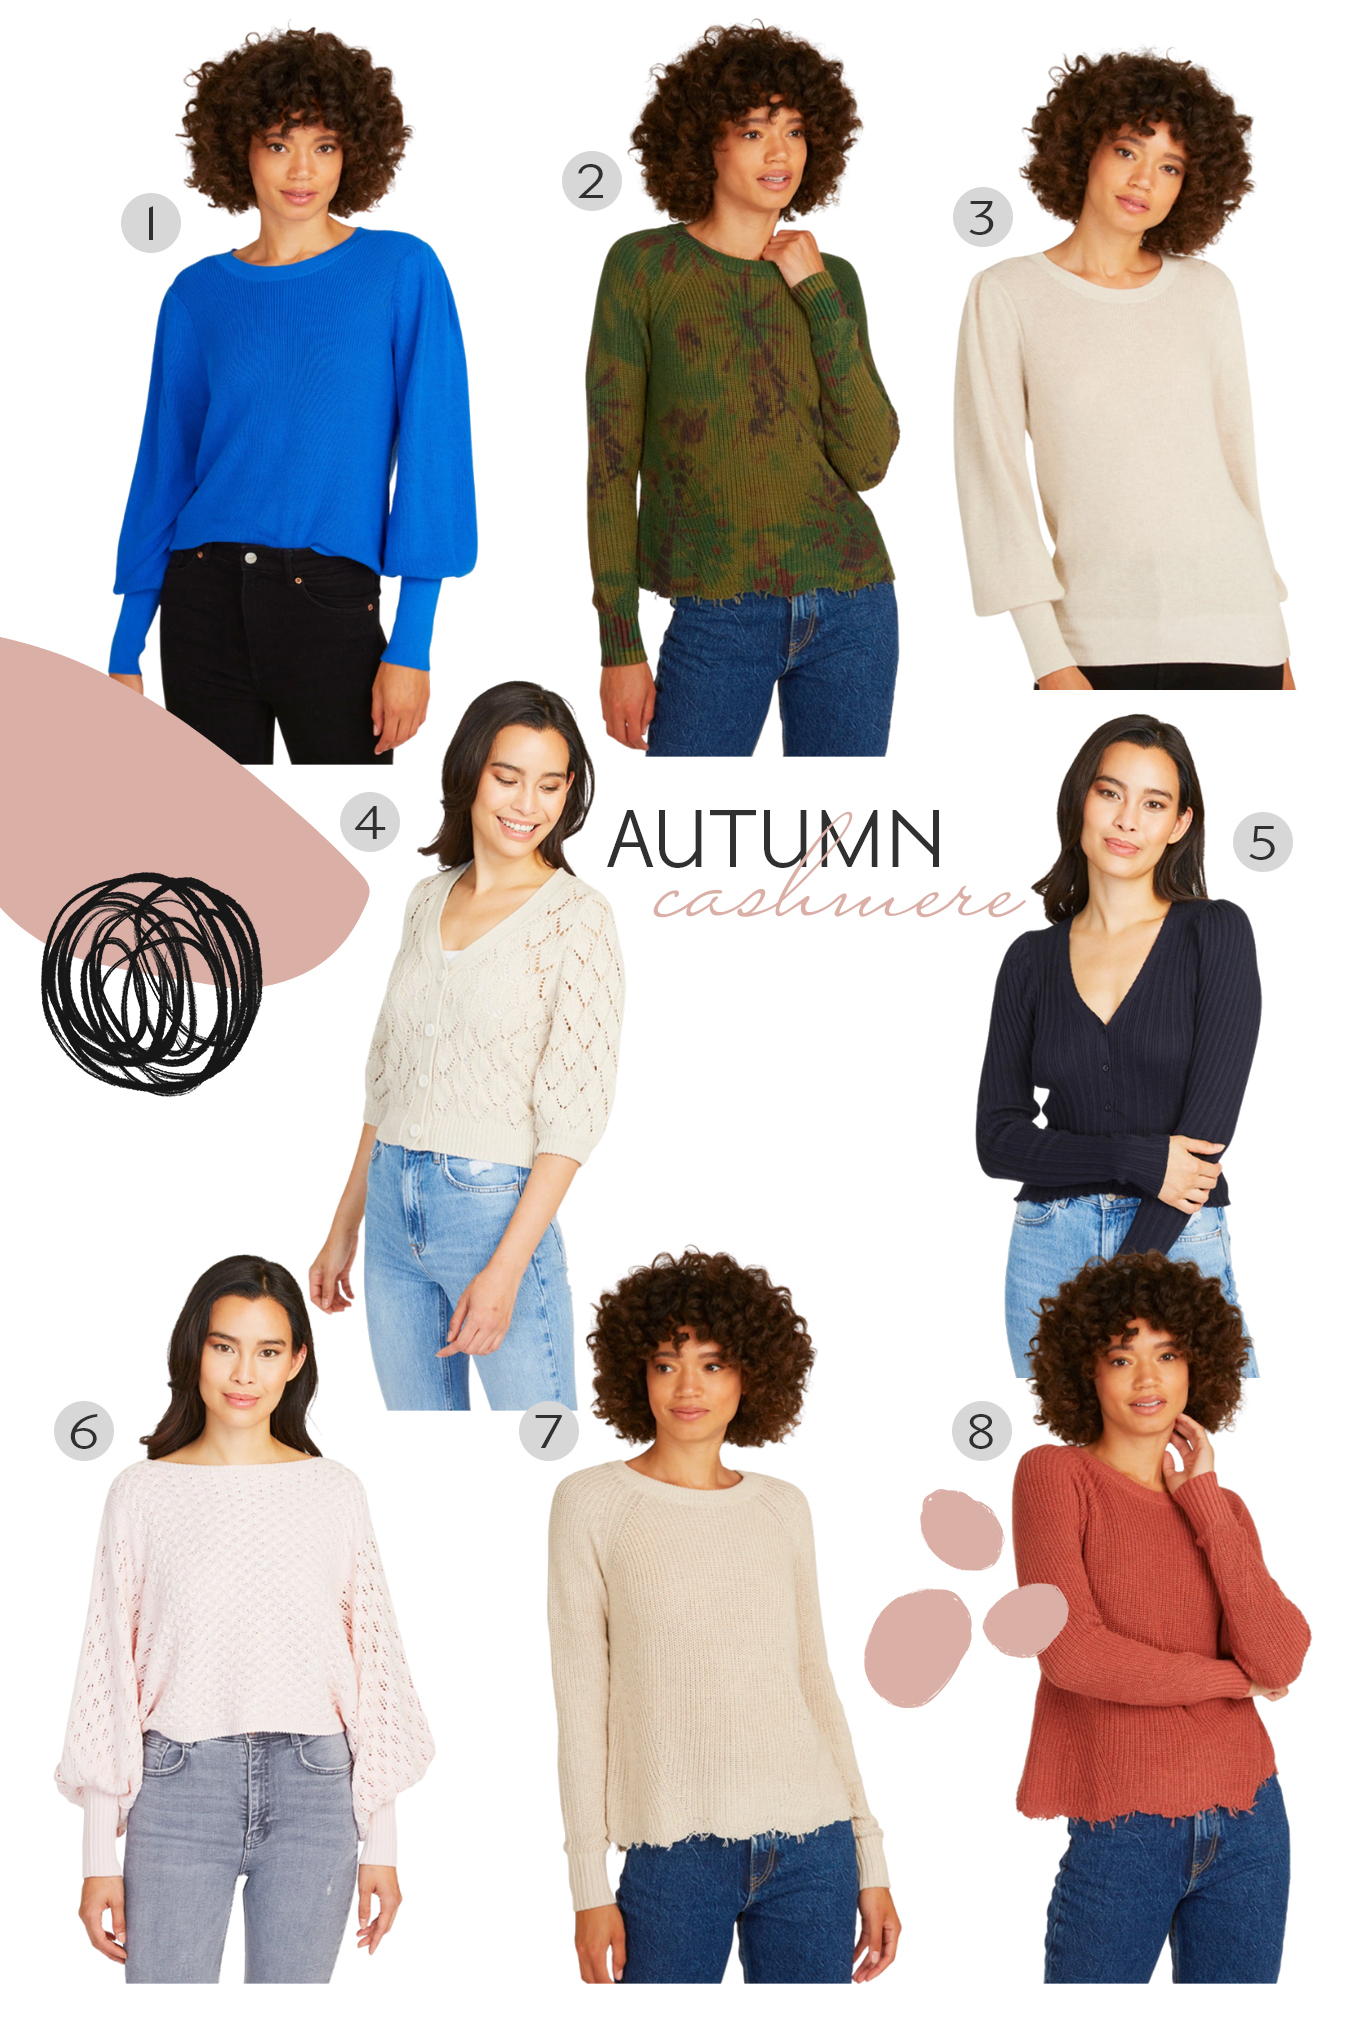 Autumn Cashmere Favorites for Fall